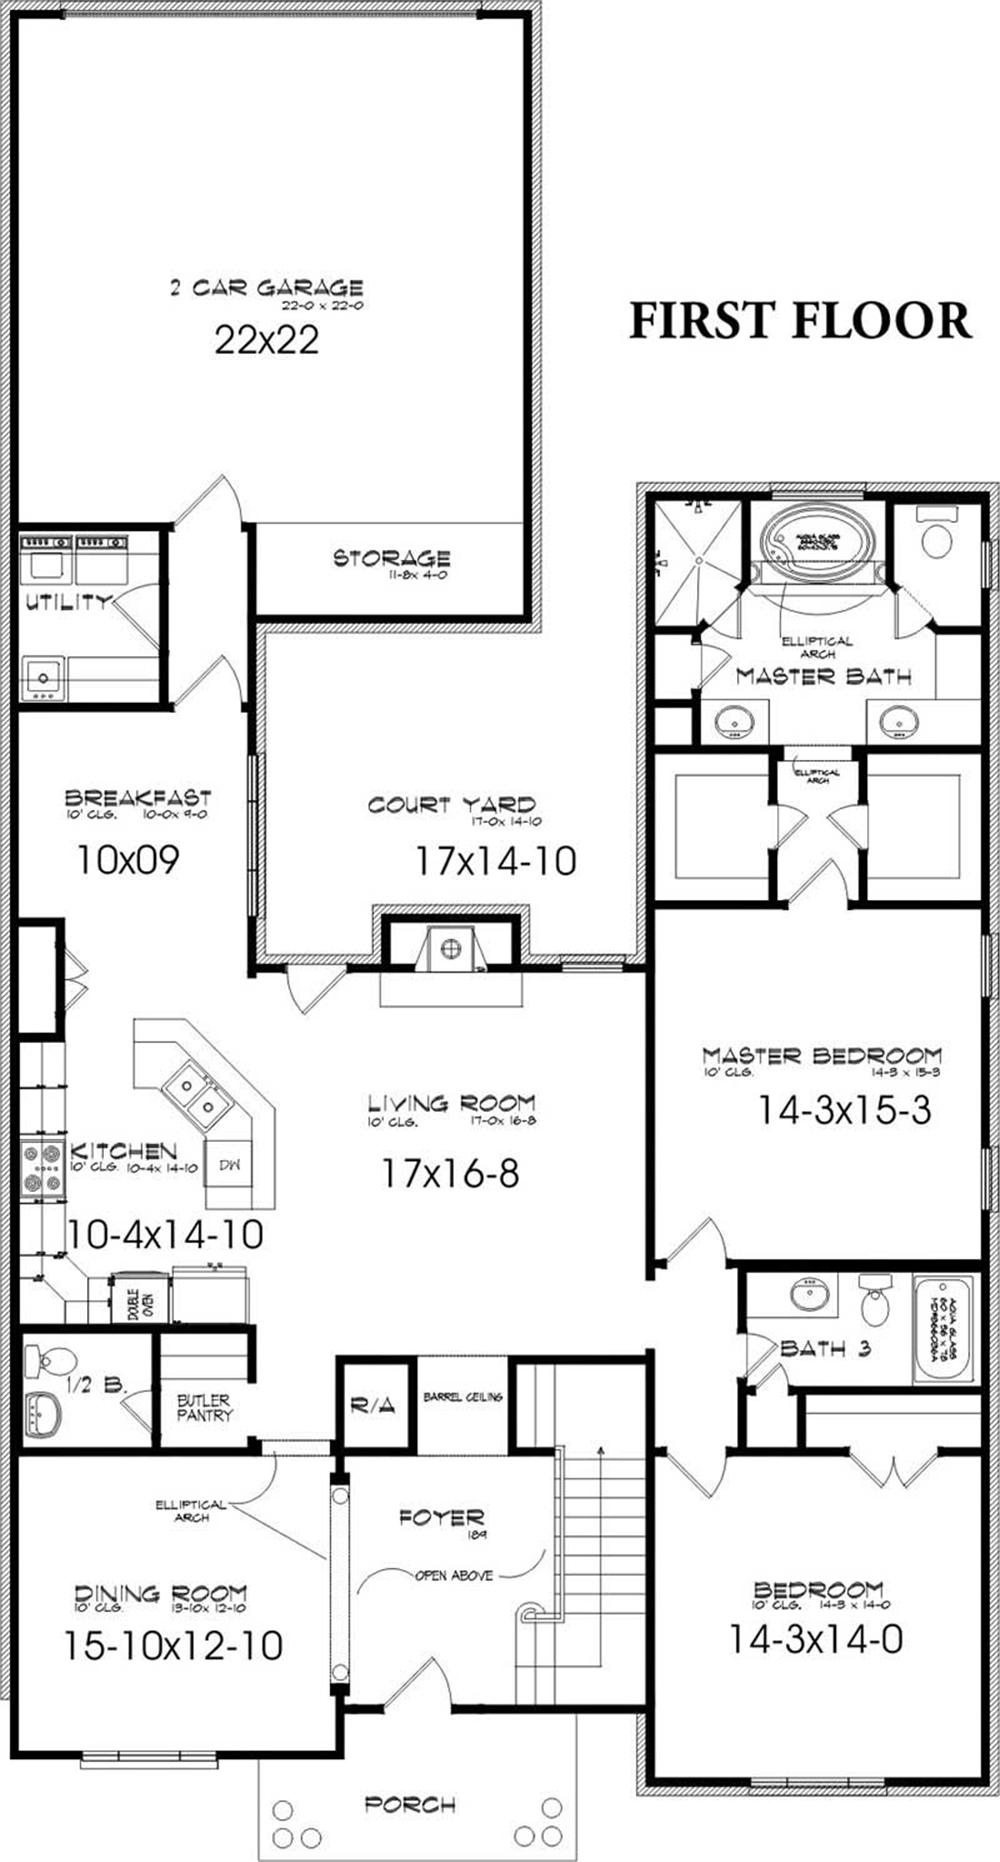 First floor house plans Home design house plans